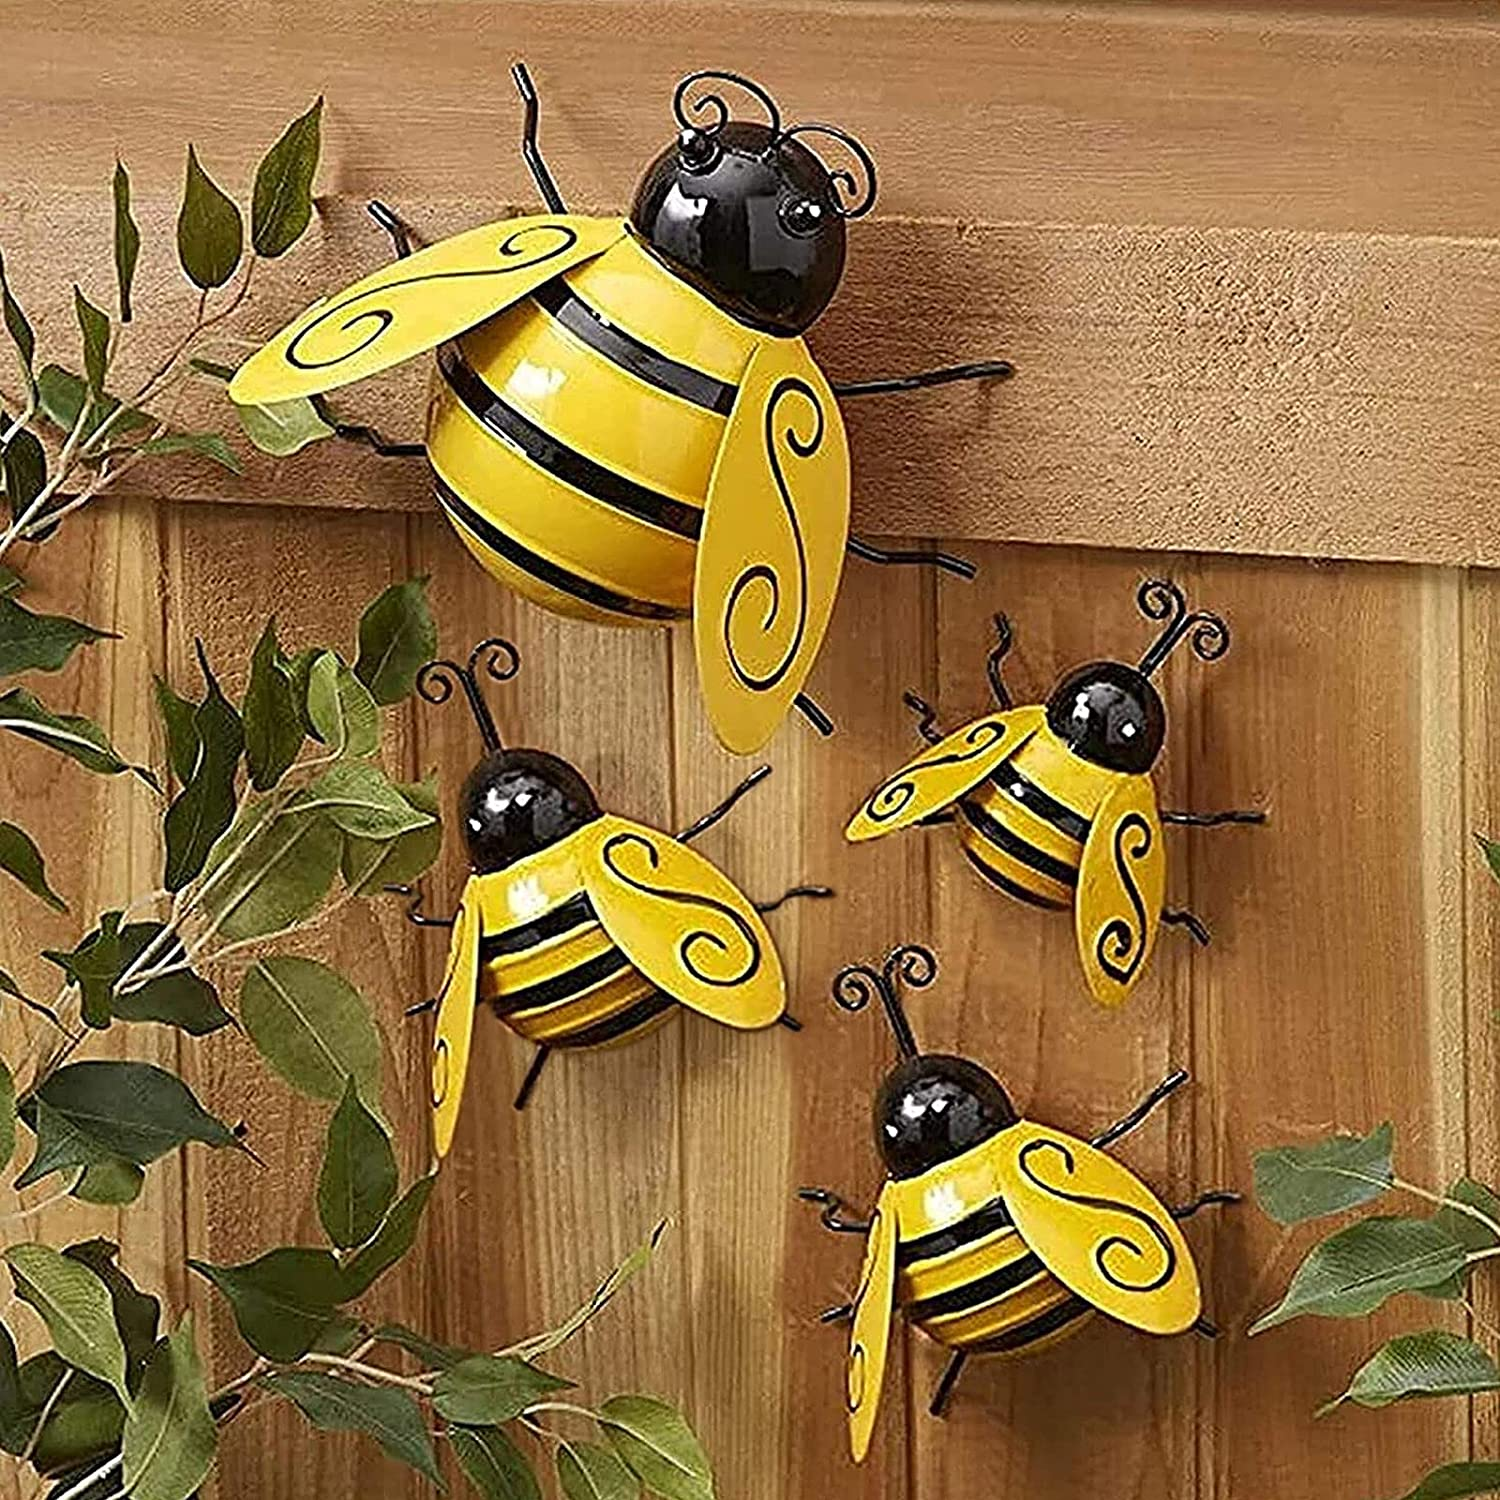 Becizy 4 Pack Metal Bee Wall Decor Outdoor Garden Fence Decor, 3D Bumble Bee Wall Art Decoration, Iron Bee Wall Art Sculpture Hanging for Home, Living Room, Patio, Office, Porches, Yard, Lawn